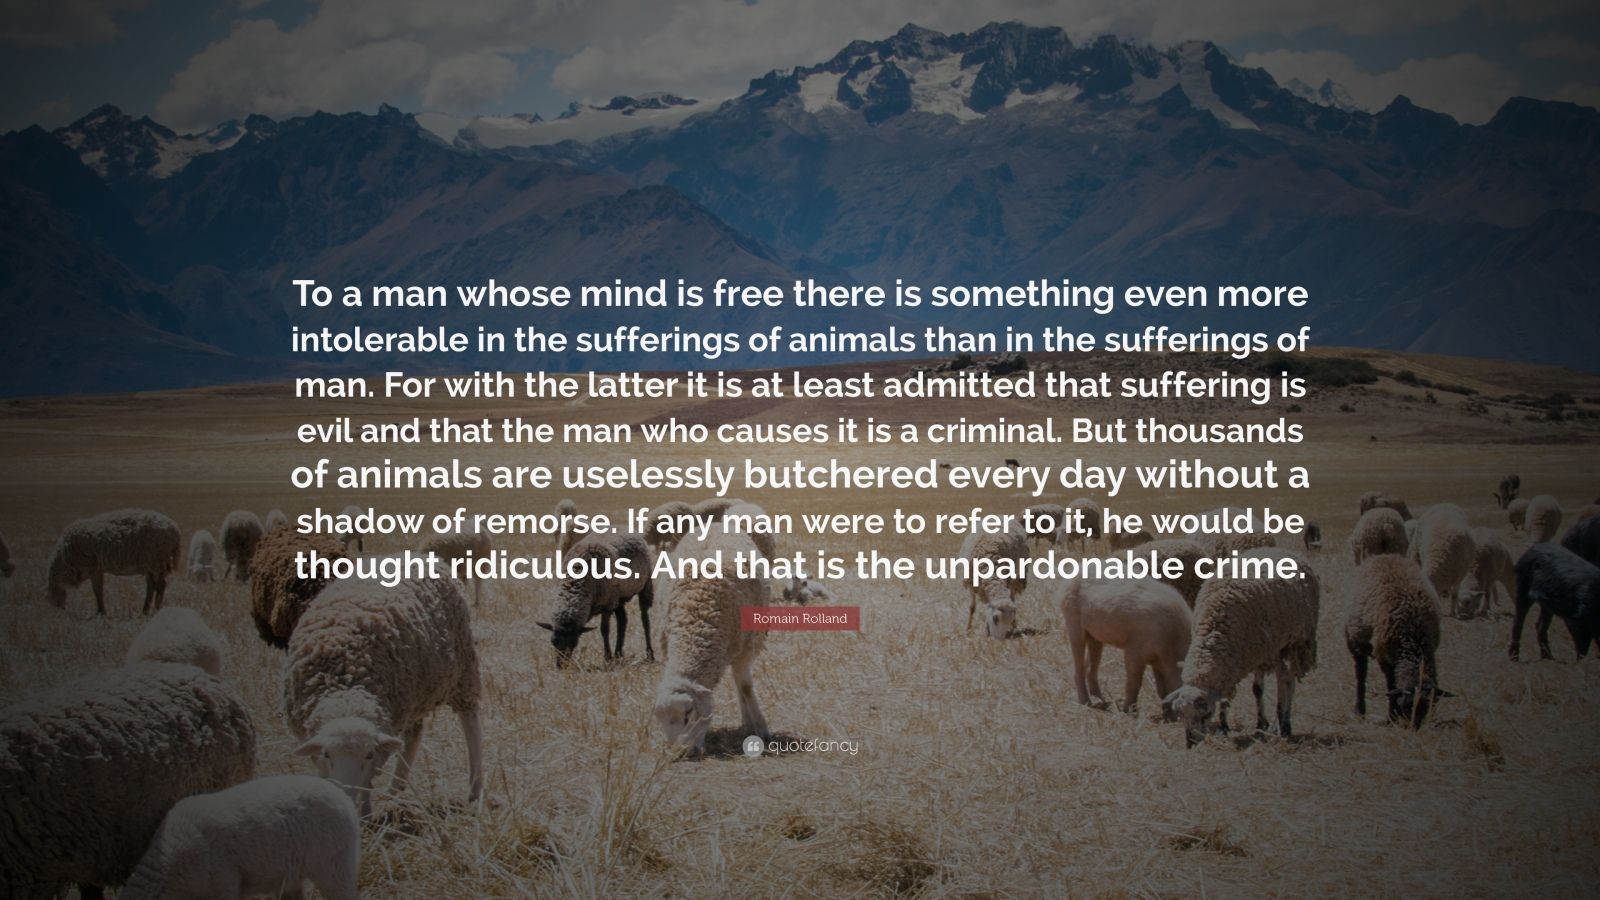 """Romain Rolland Quote: """"To a man whose mind is free there is something even more intolerable in the sufferings of animals than in the sufferings of man. For with the latter it is at least admitted that suffering is evil and that the man who causes it is a criminal. But thousands of animals are uselessly butchered every day without a shadow of remorse. If any man were to refer to it, he would be thought ridiculous. And that is the unpardonable crime."""""""